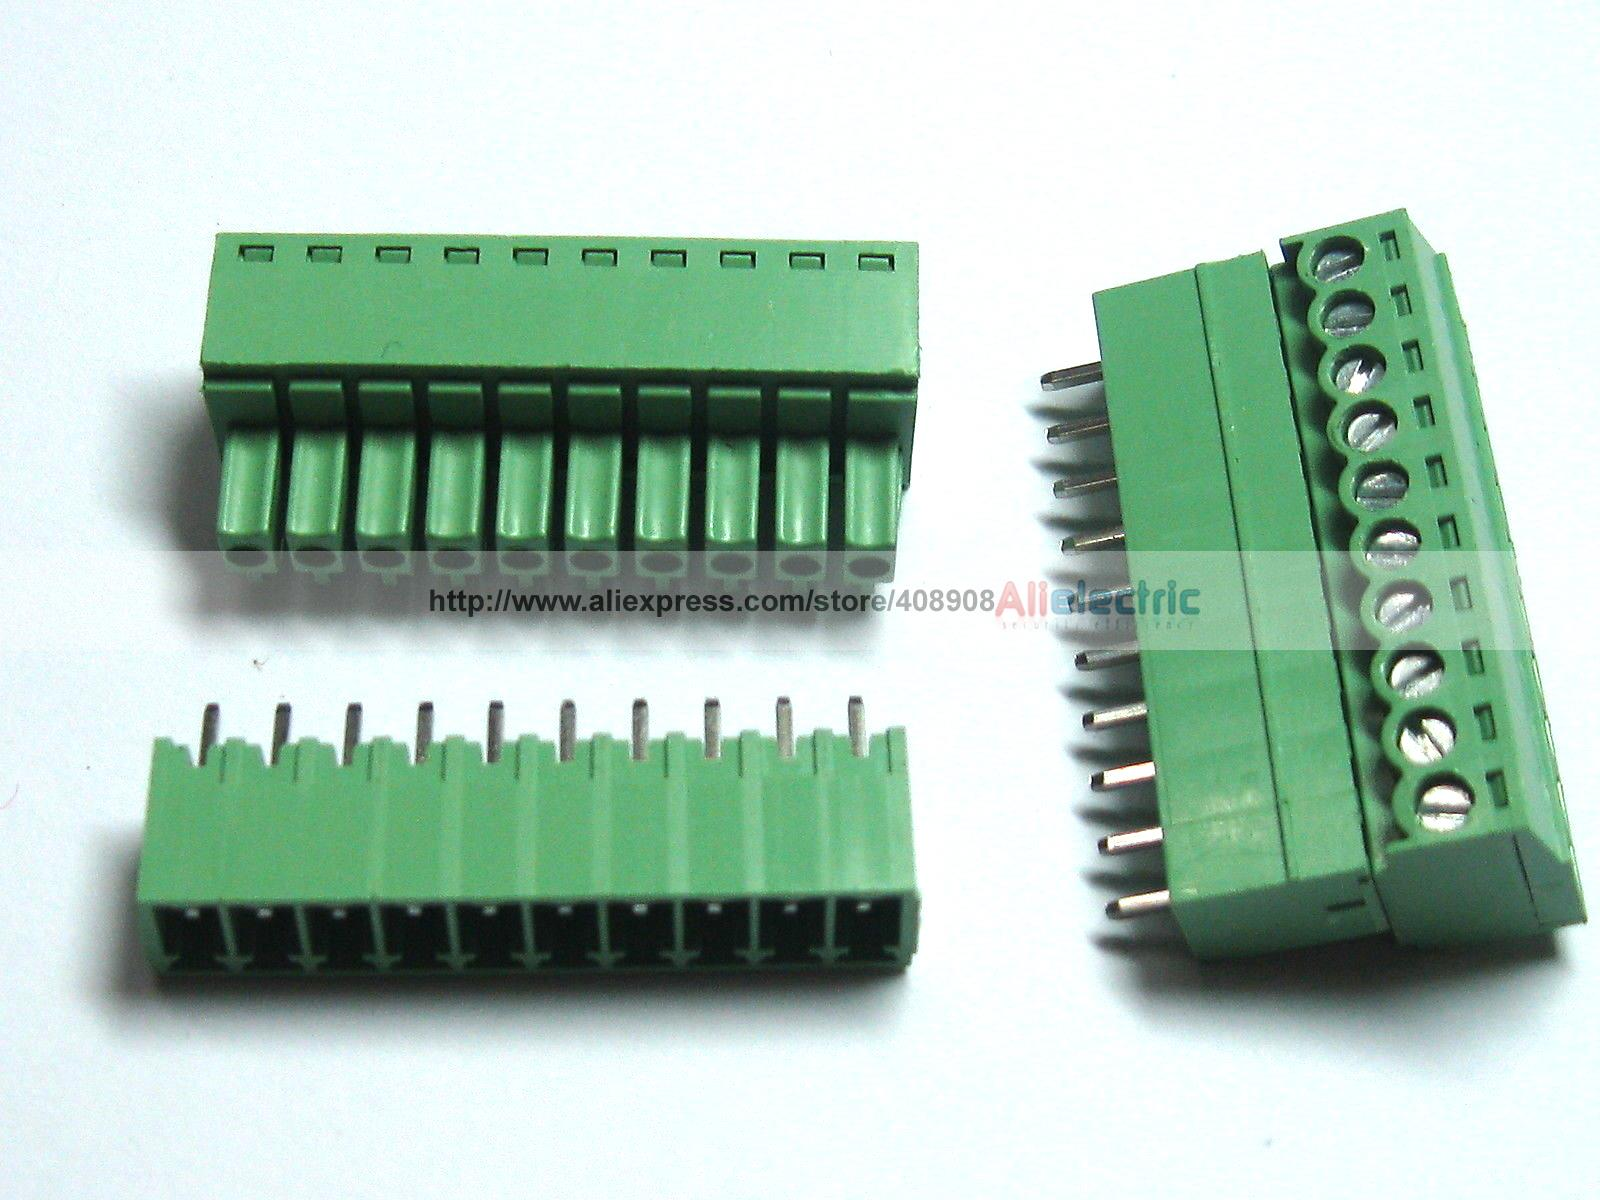 цена на 12 Pcs Screw Terminal Block Connector 3.5mm 10 Pin Way Green Pluggable Type